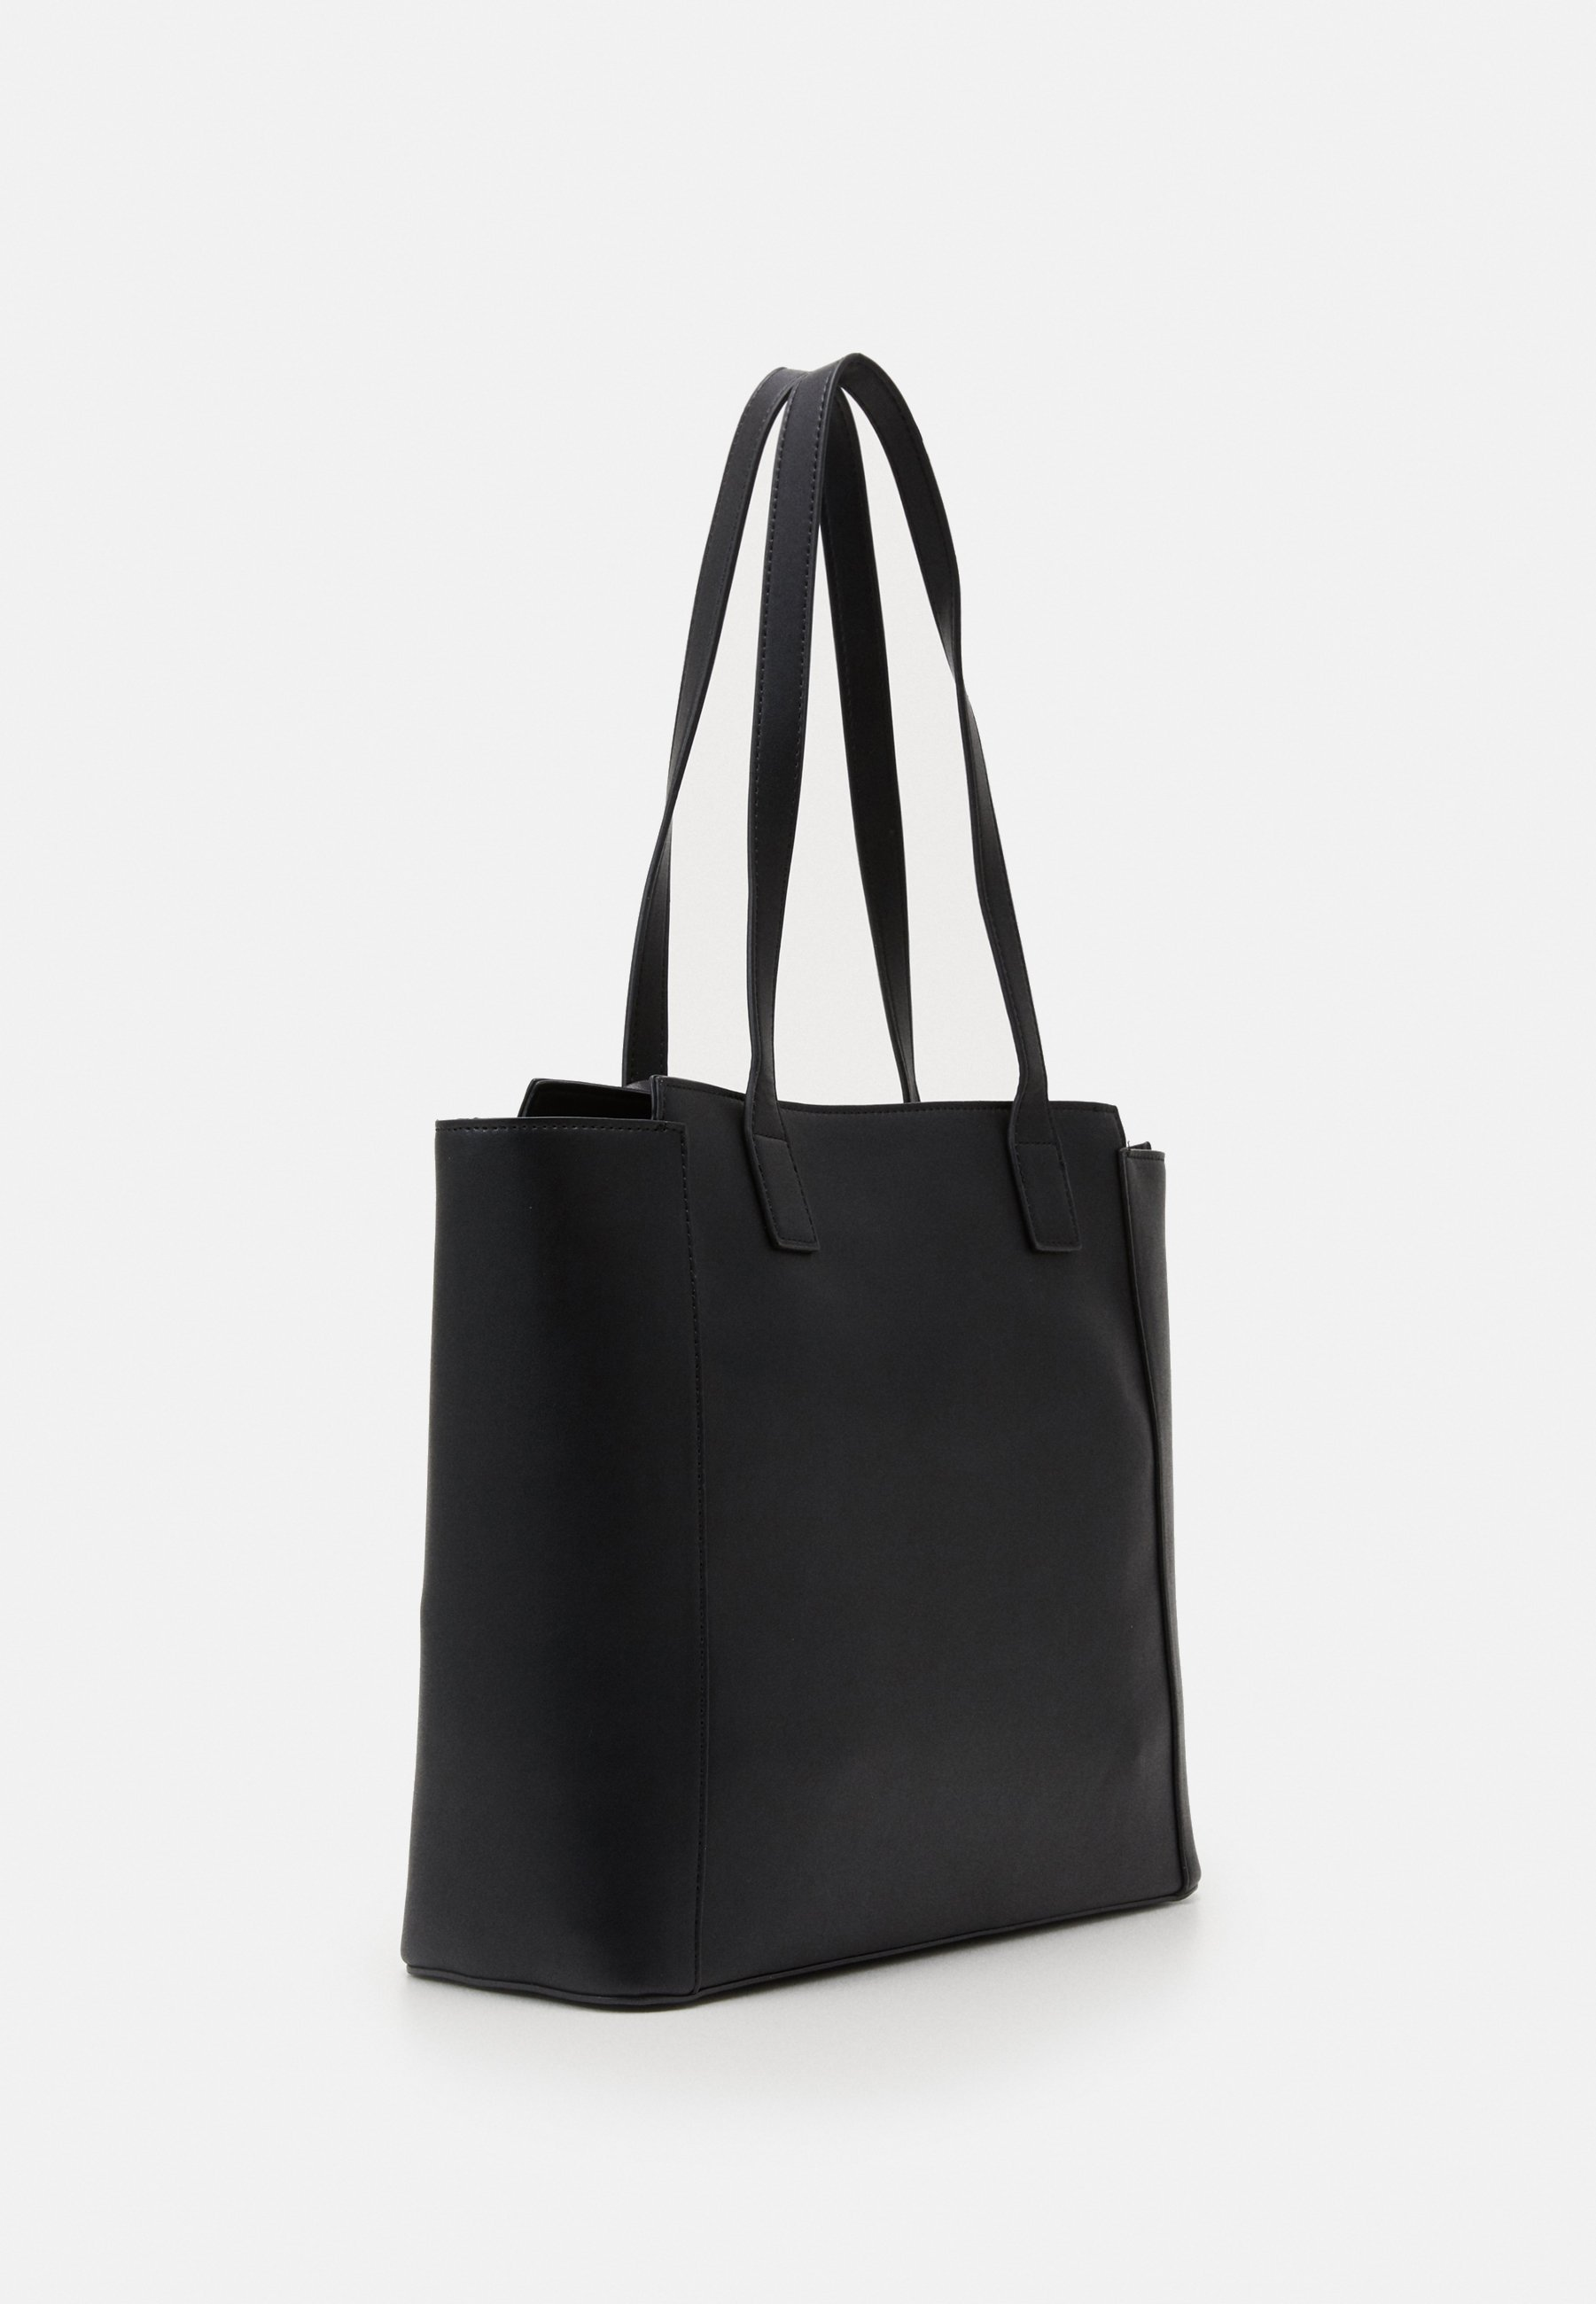 Anna Field Shoppingveske - black/svart bP79KnqwTihCCWP